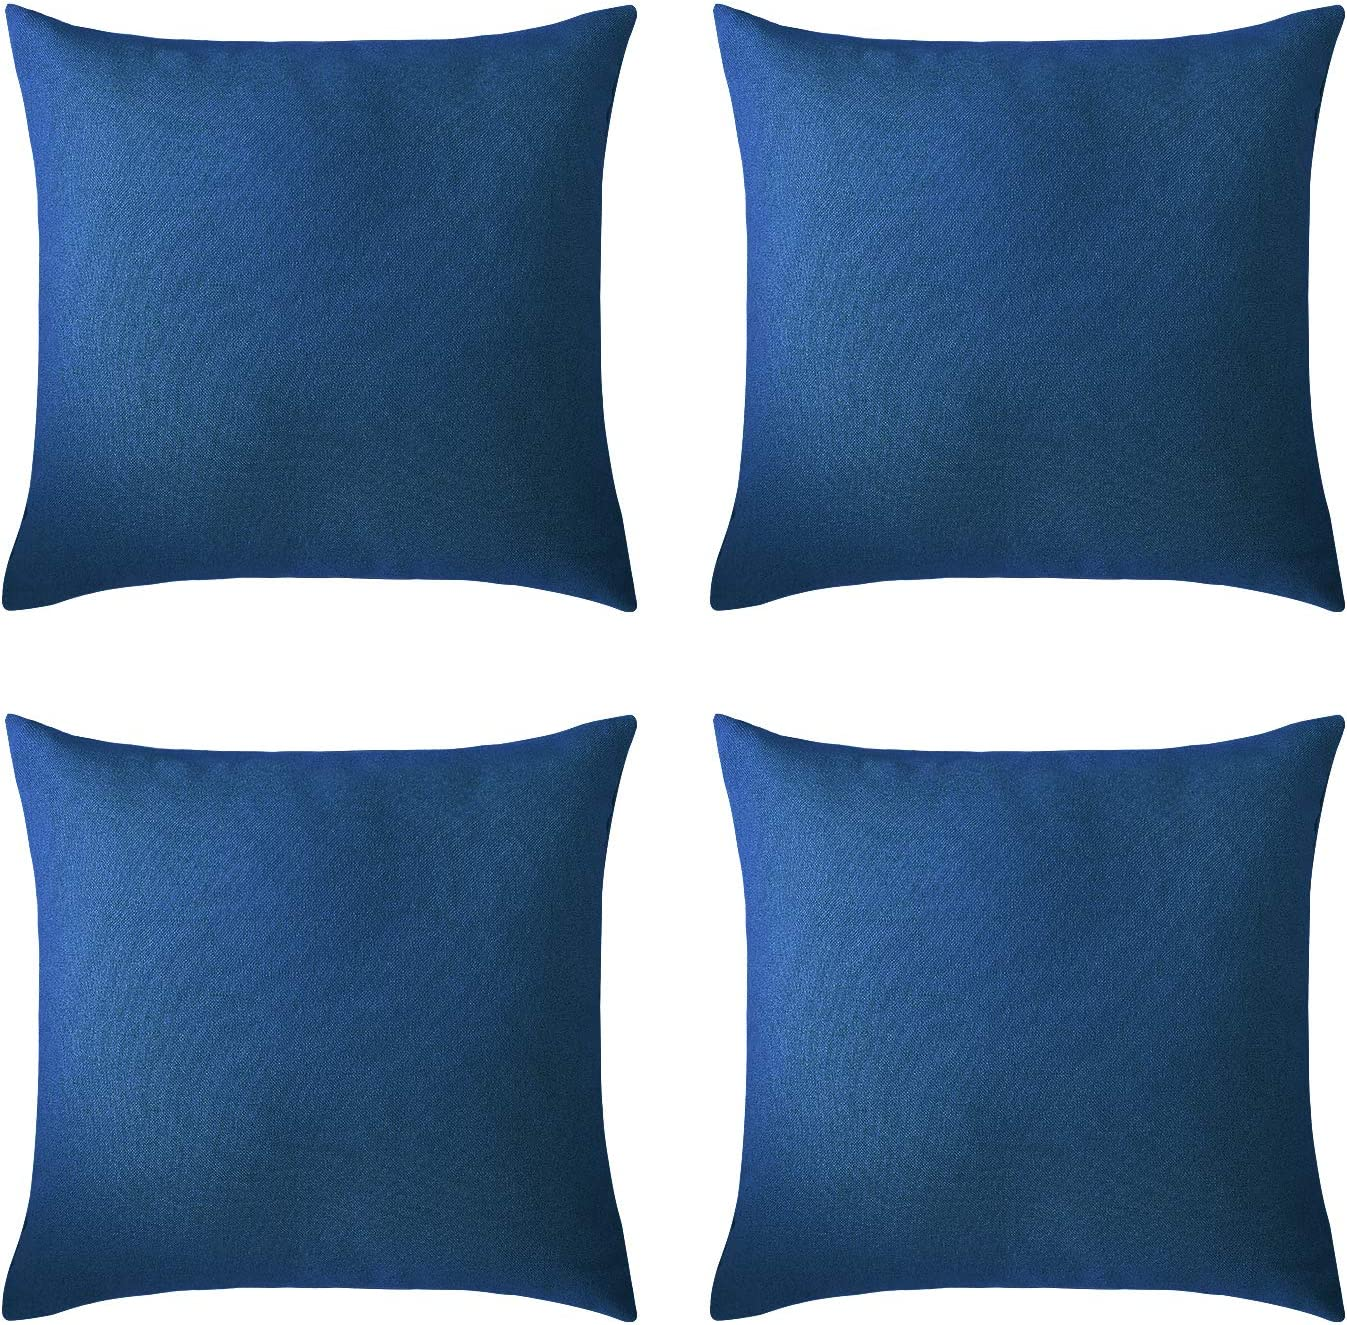 Deconovo Pillow Covers Faux Linen Cushion Cases Solid Pillowcases Covers for Living Room 24 x 24 Inch Federal Blue Set of 4 No Pillow Insert